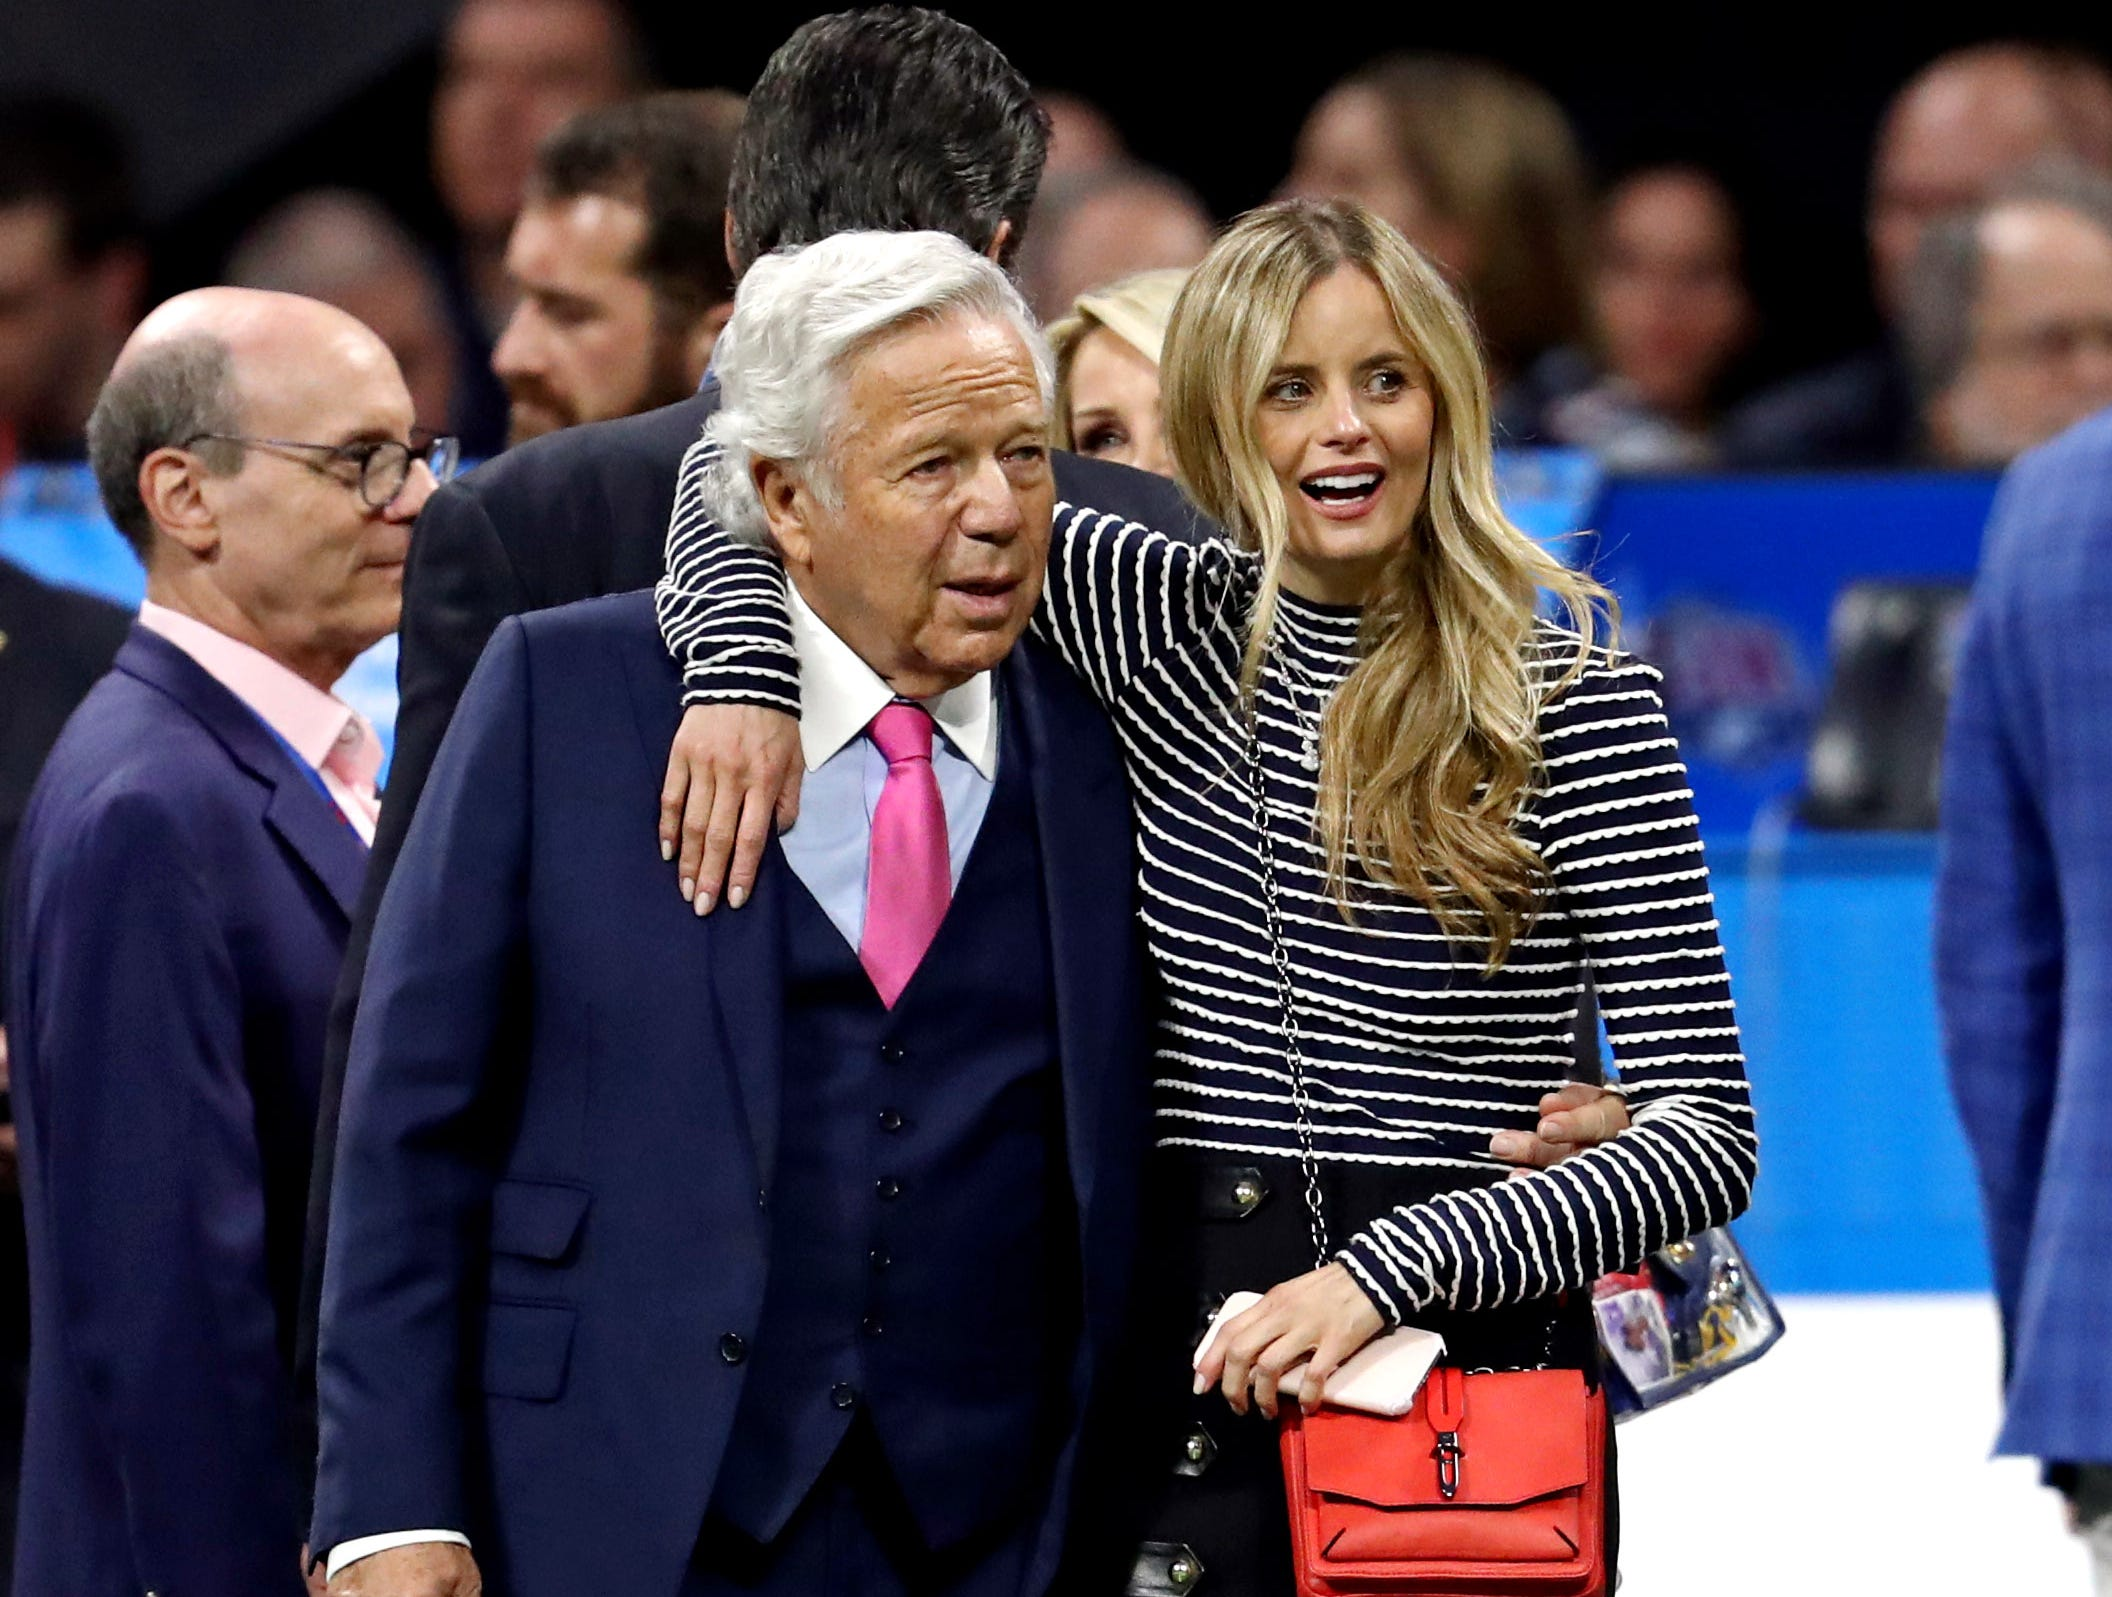 New England Patriots owner Robert Kraft and his wife Ricki Noel Lander on the field at Mercedes-Benz Stadium before Super Bowl LIII.